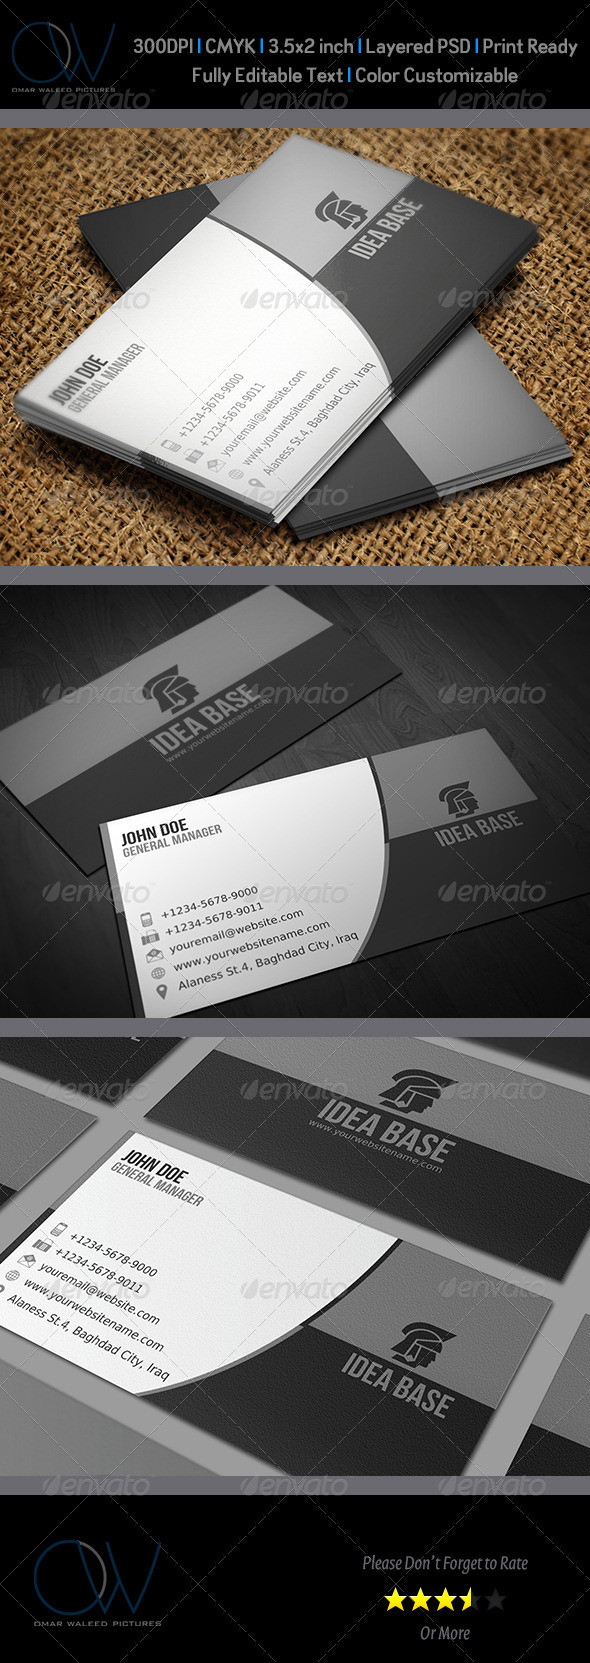 Corporate Business Card Vol.4 - Corporate Business Cards